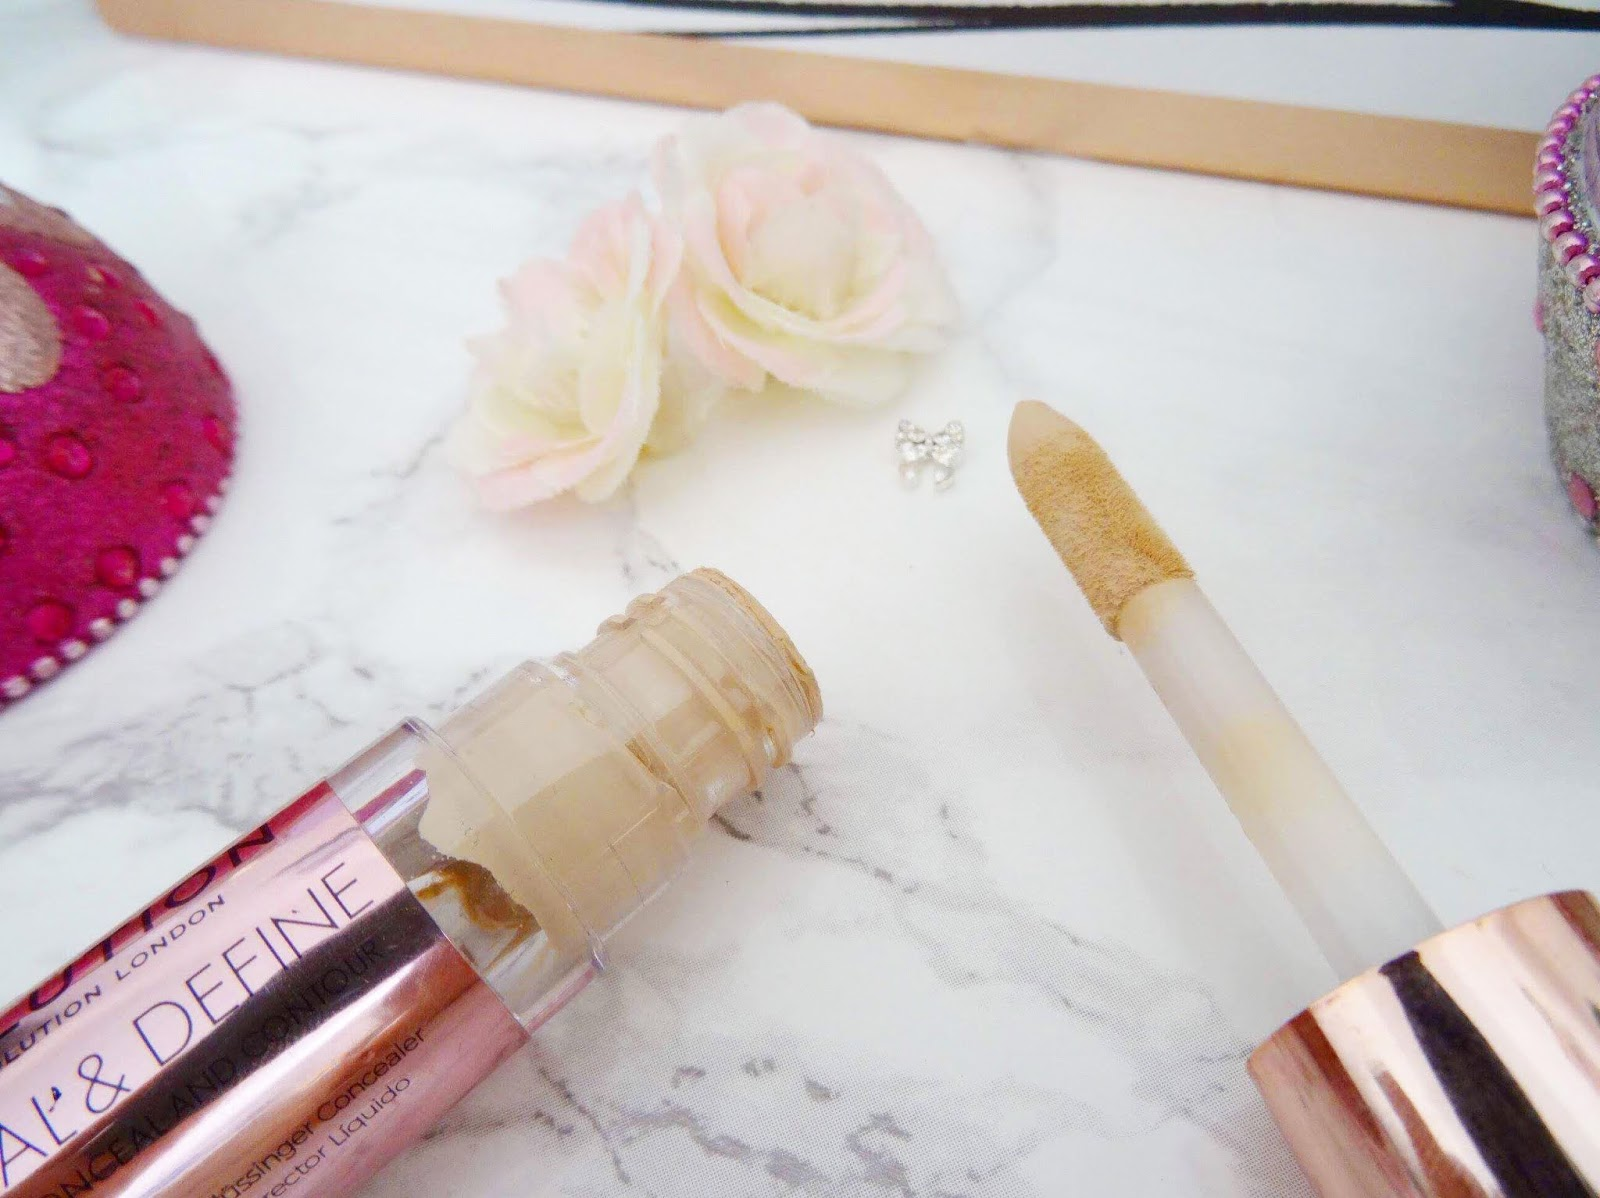 Makeup Revolutions Conceal and Define Concealer Applicator Review